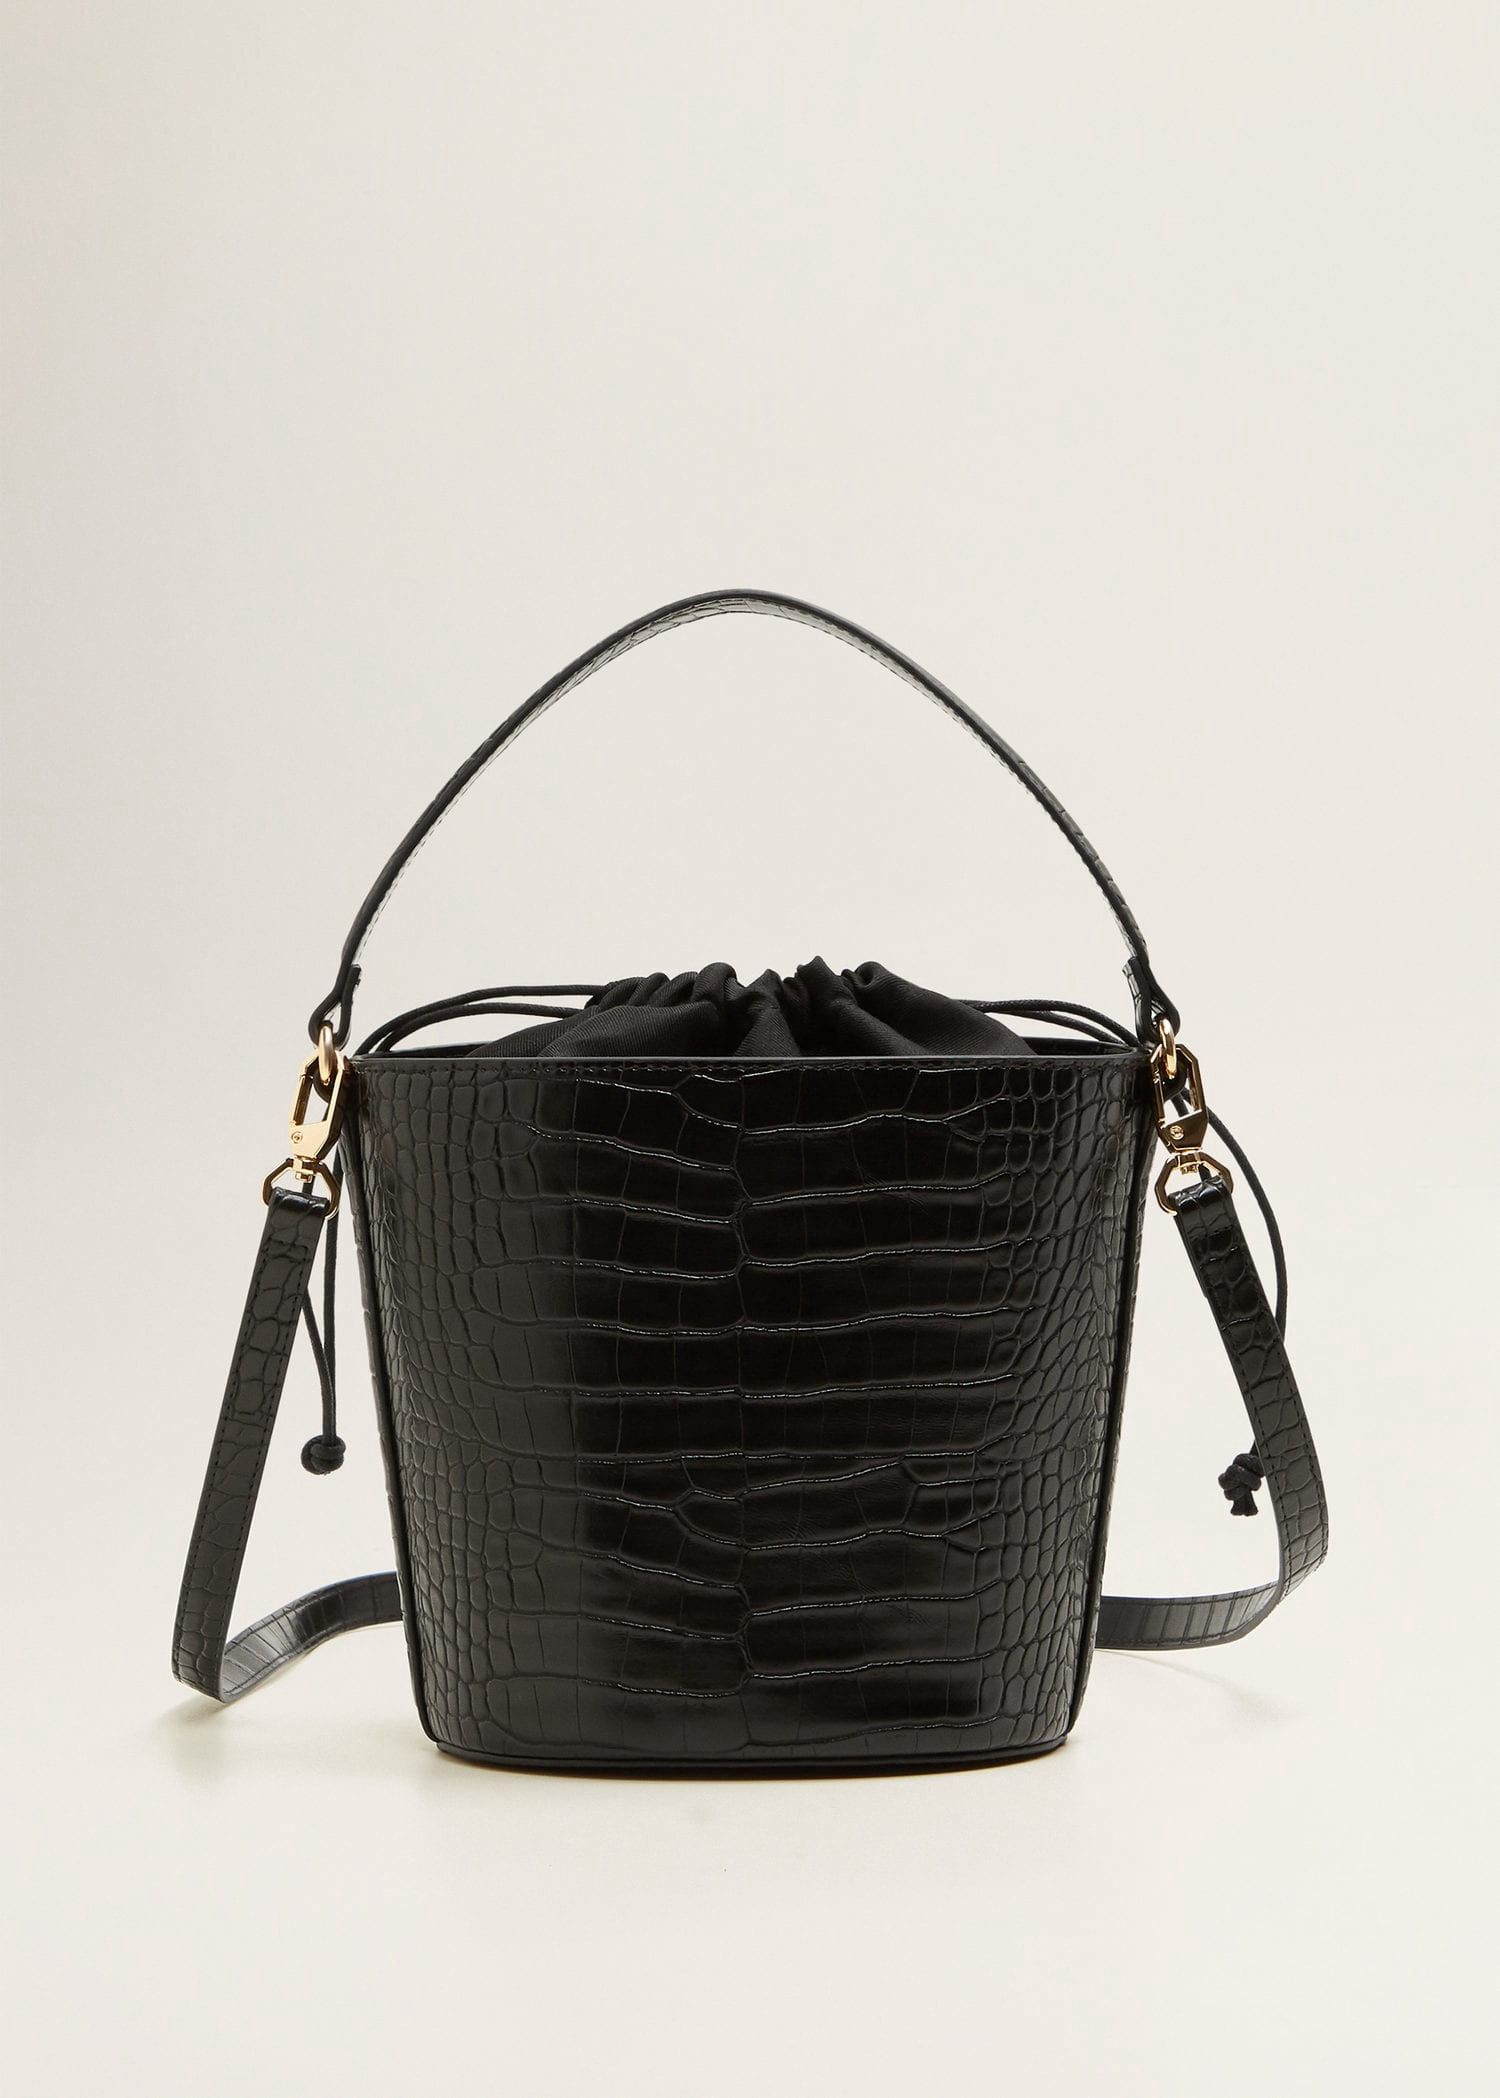 Mango Croc-Effect Bucket Bag - Black One Size  42184e0b135b1